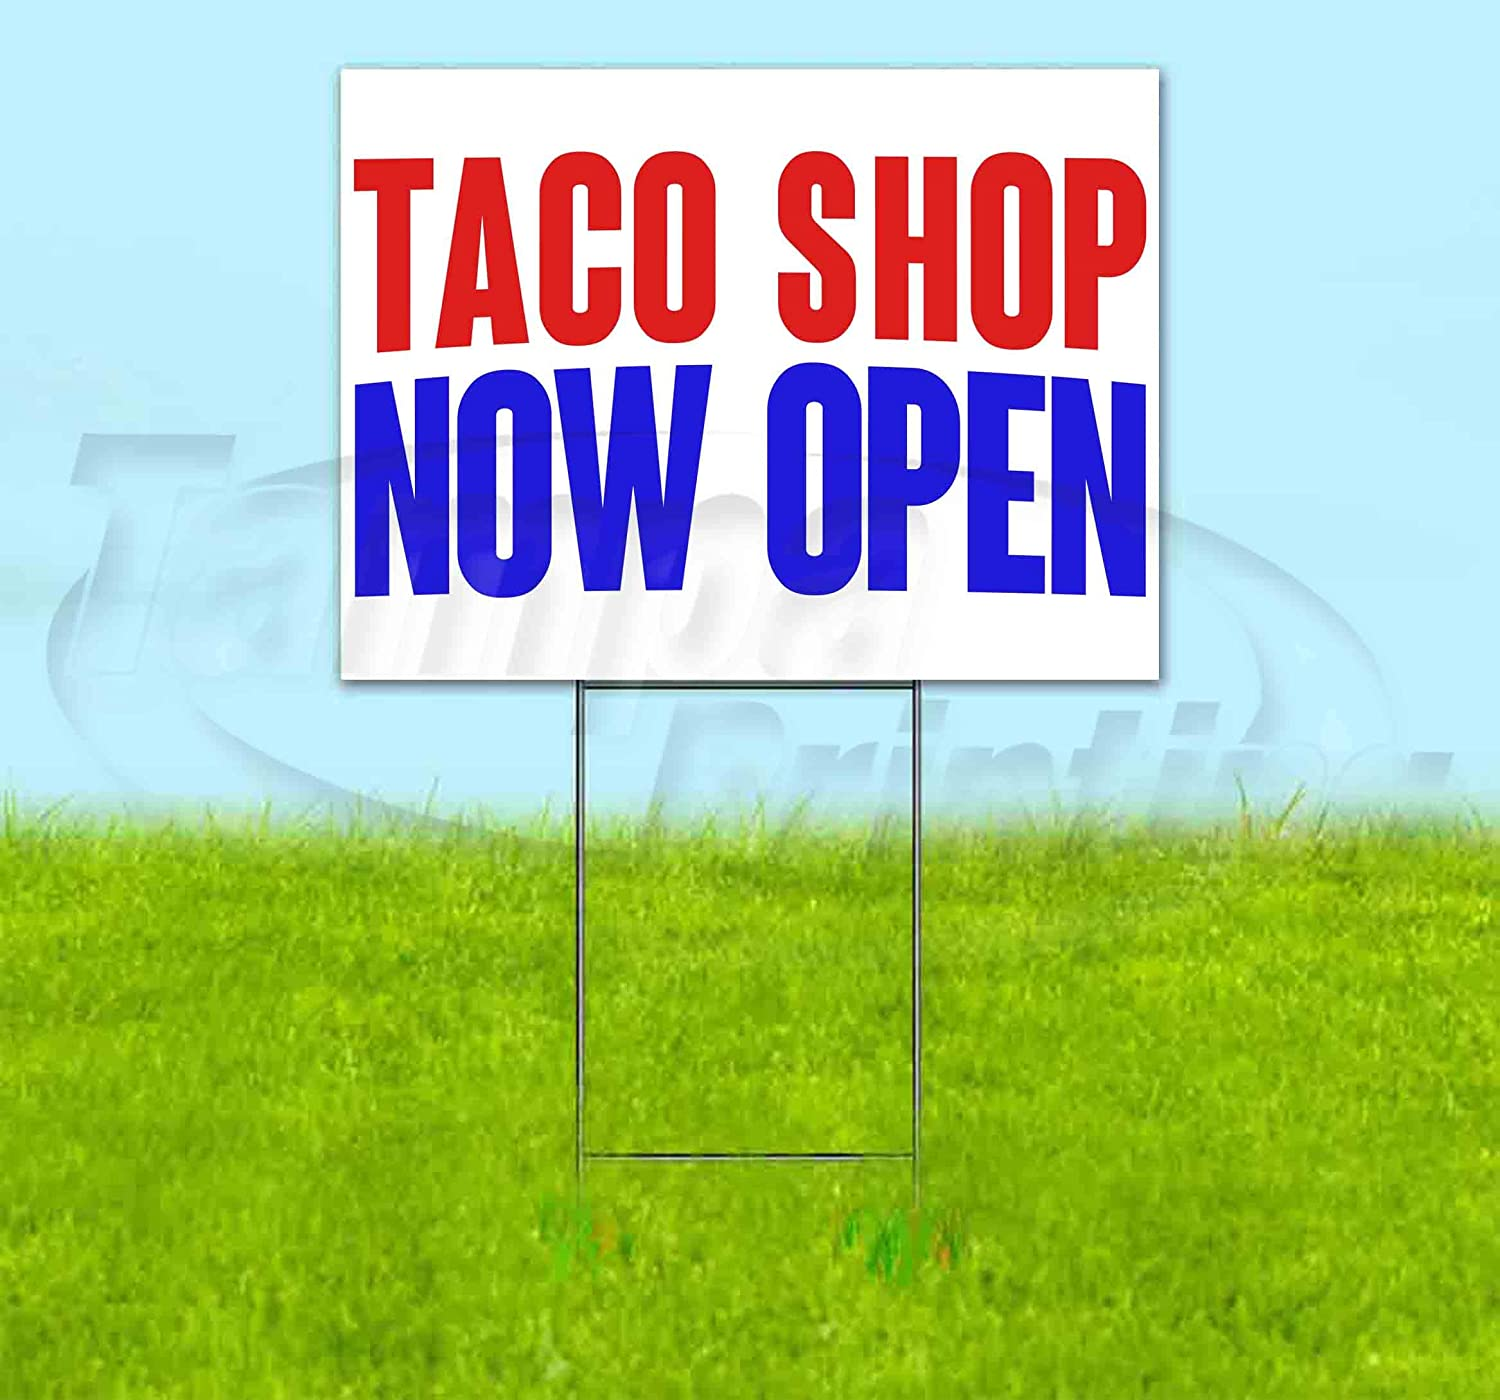 Amazon.com: Taco Shop Now Open - Cartel de plástico ...